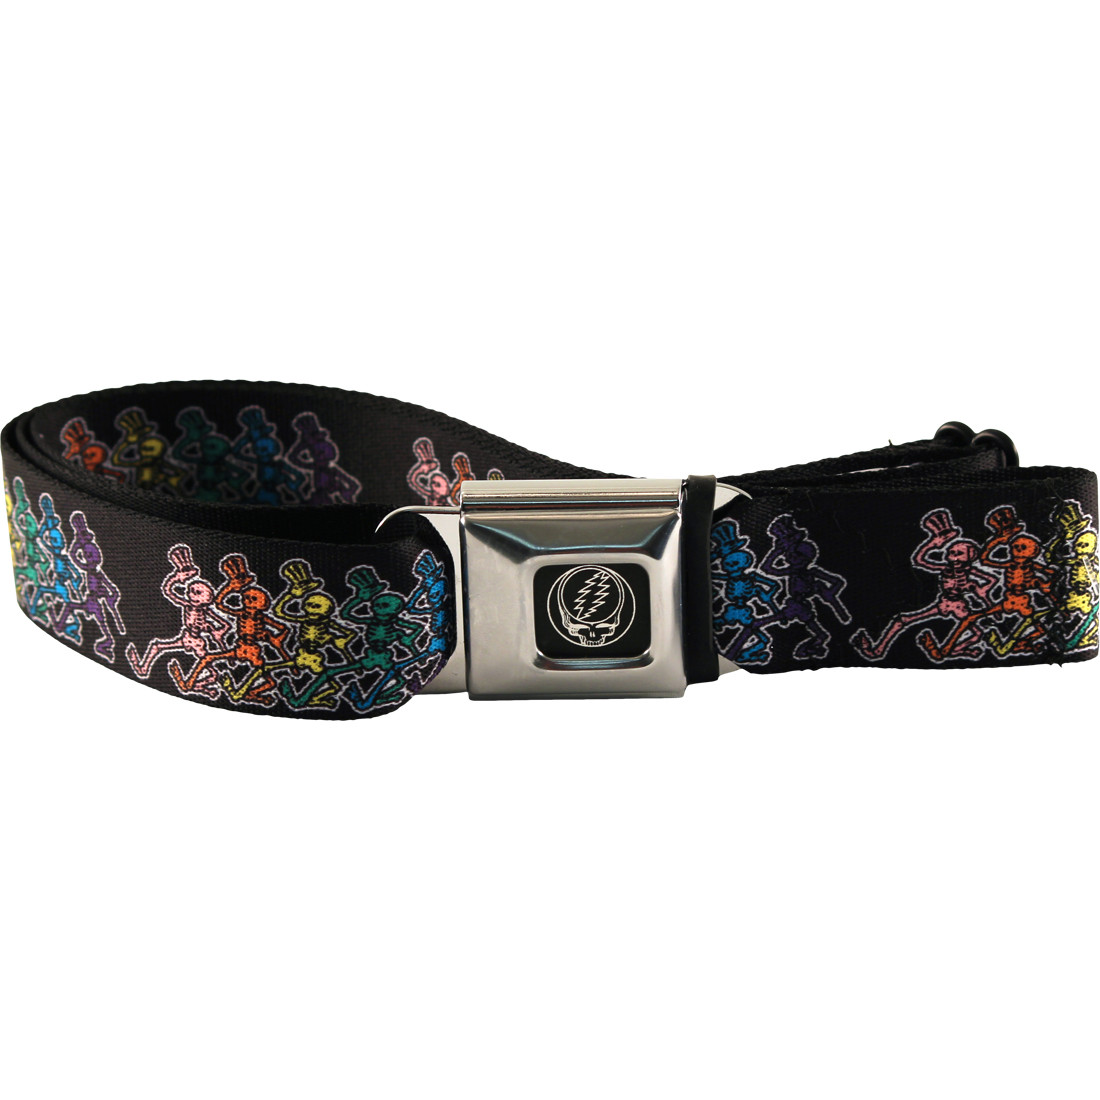 Dancing Skeletons Seatbelt Belt Black